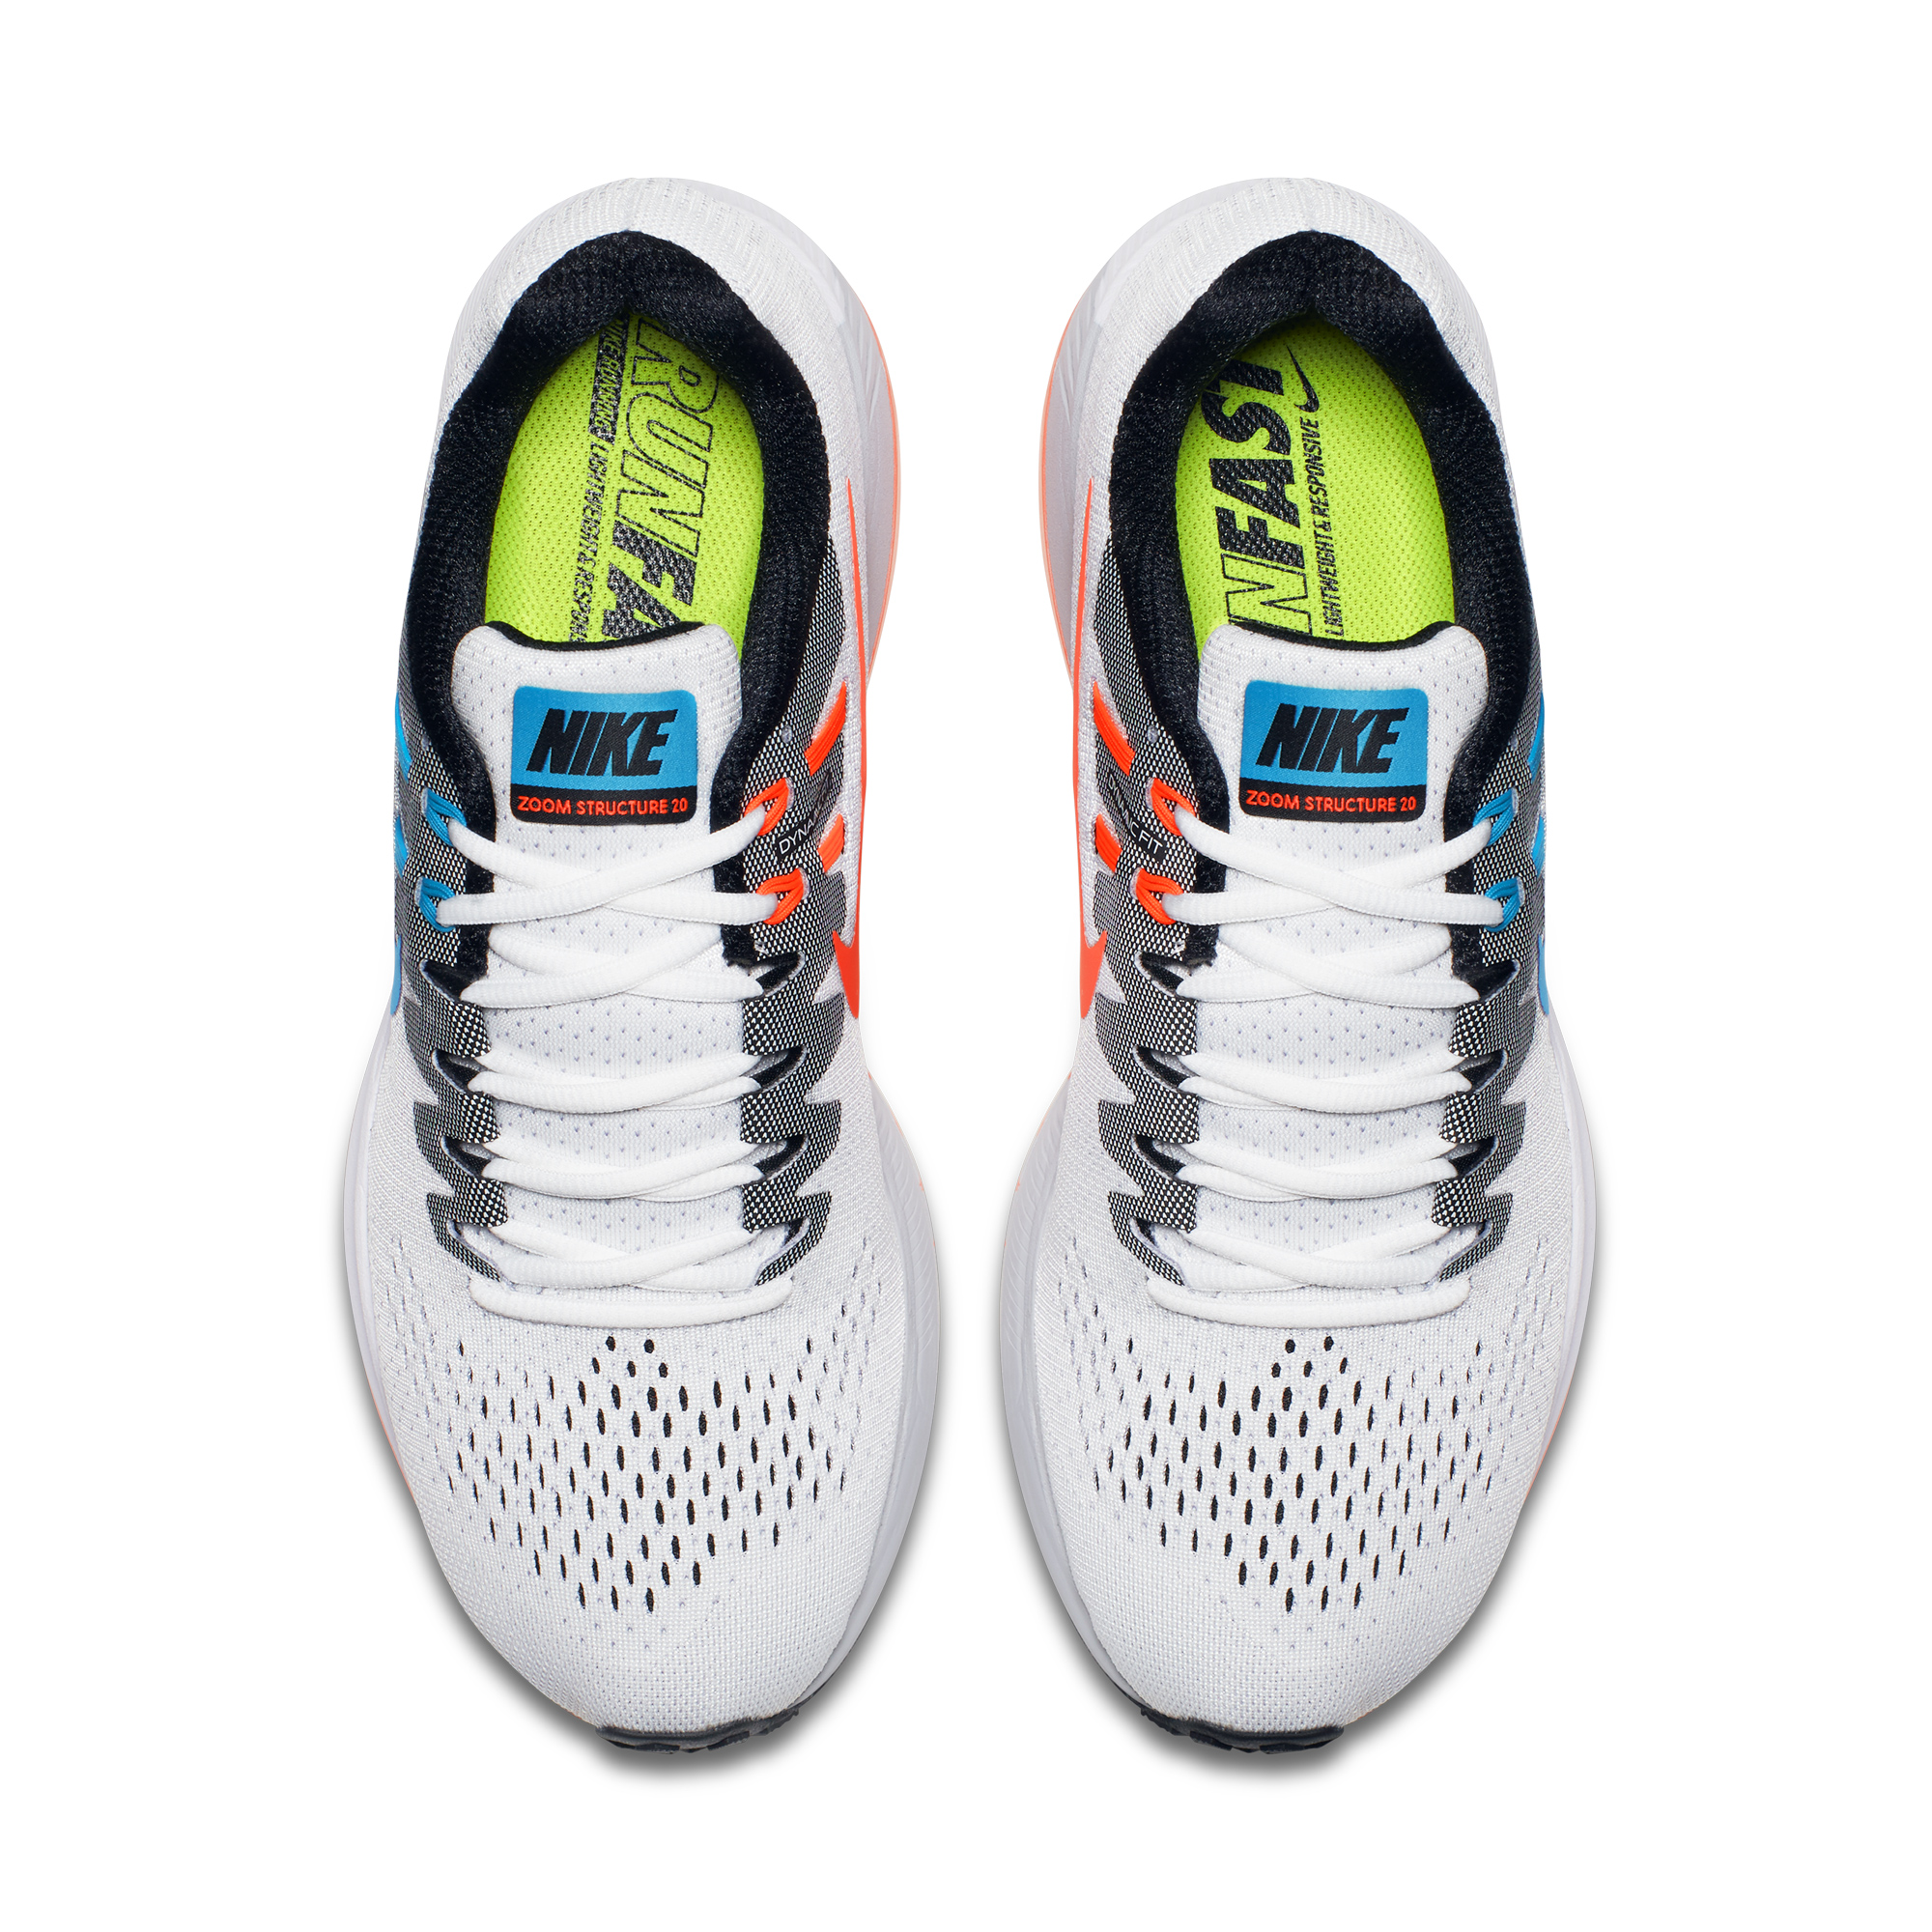 9e8f44b599db ... promo code for mens nike zoom structure 16 mens 8d26d 49bcd ...